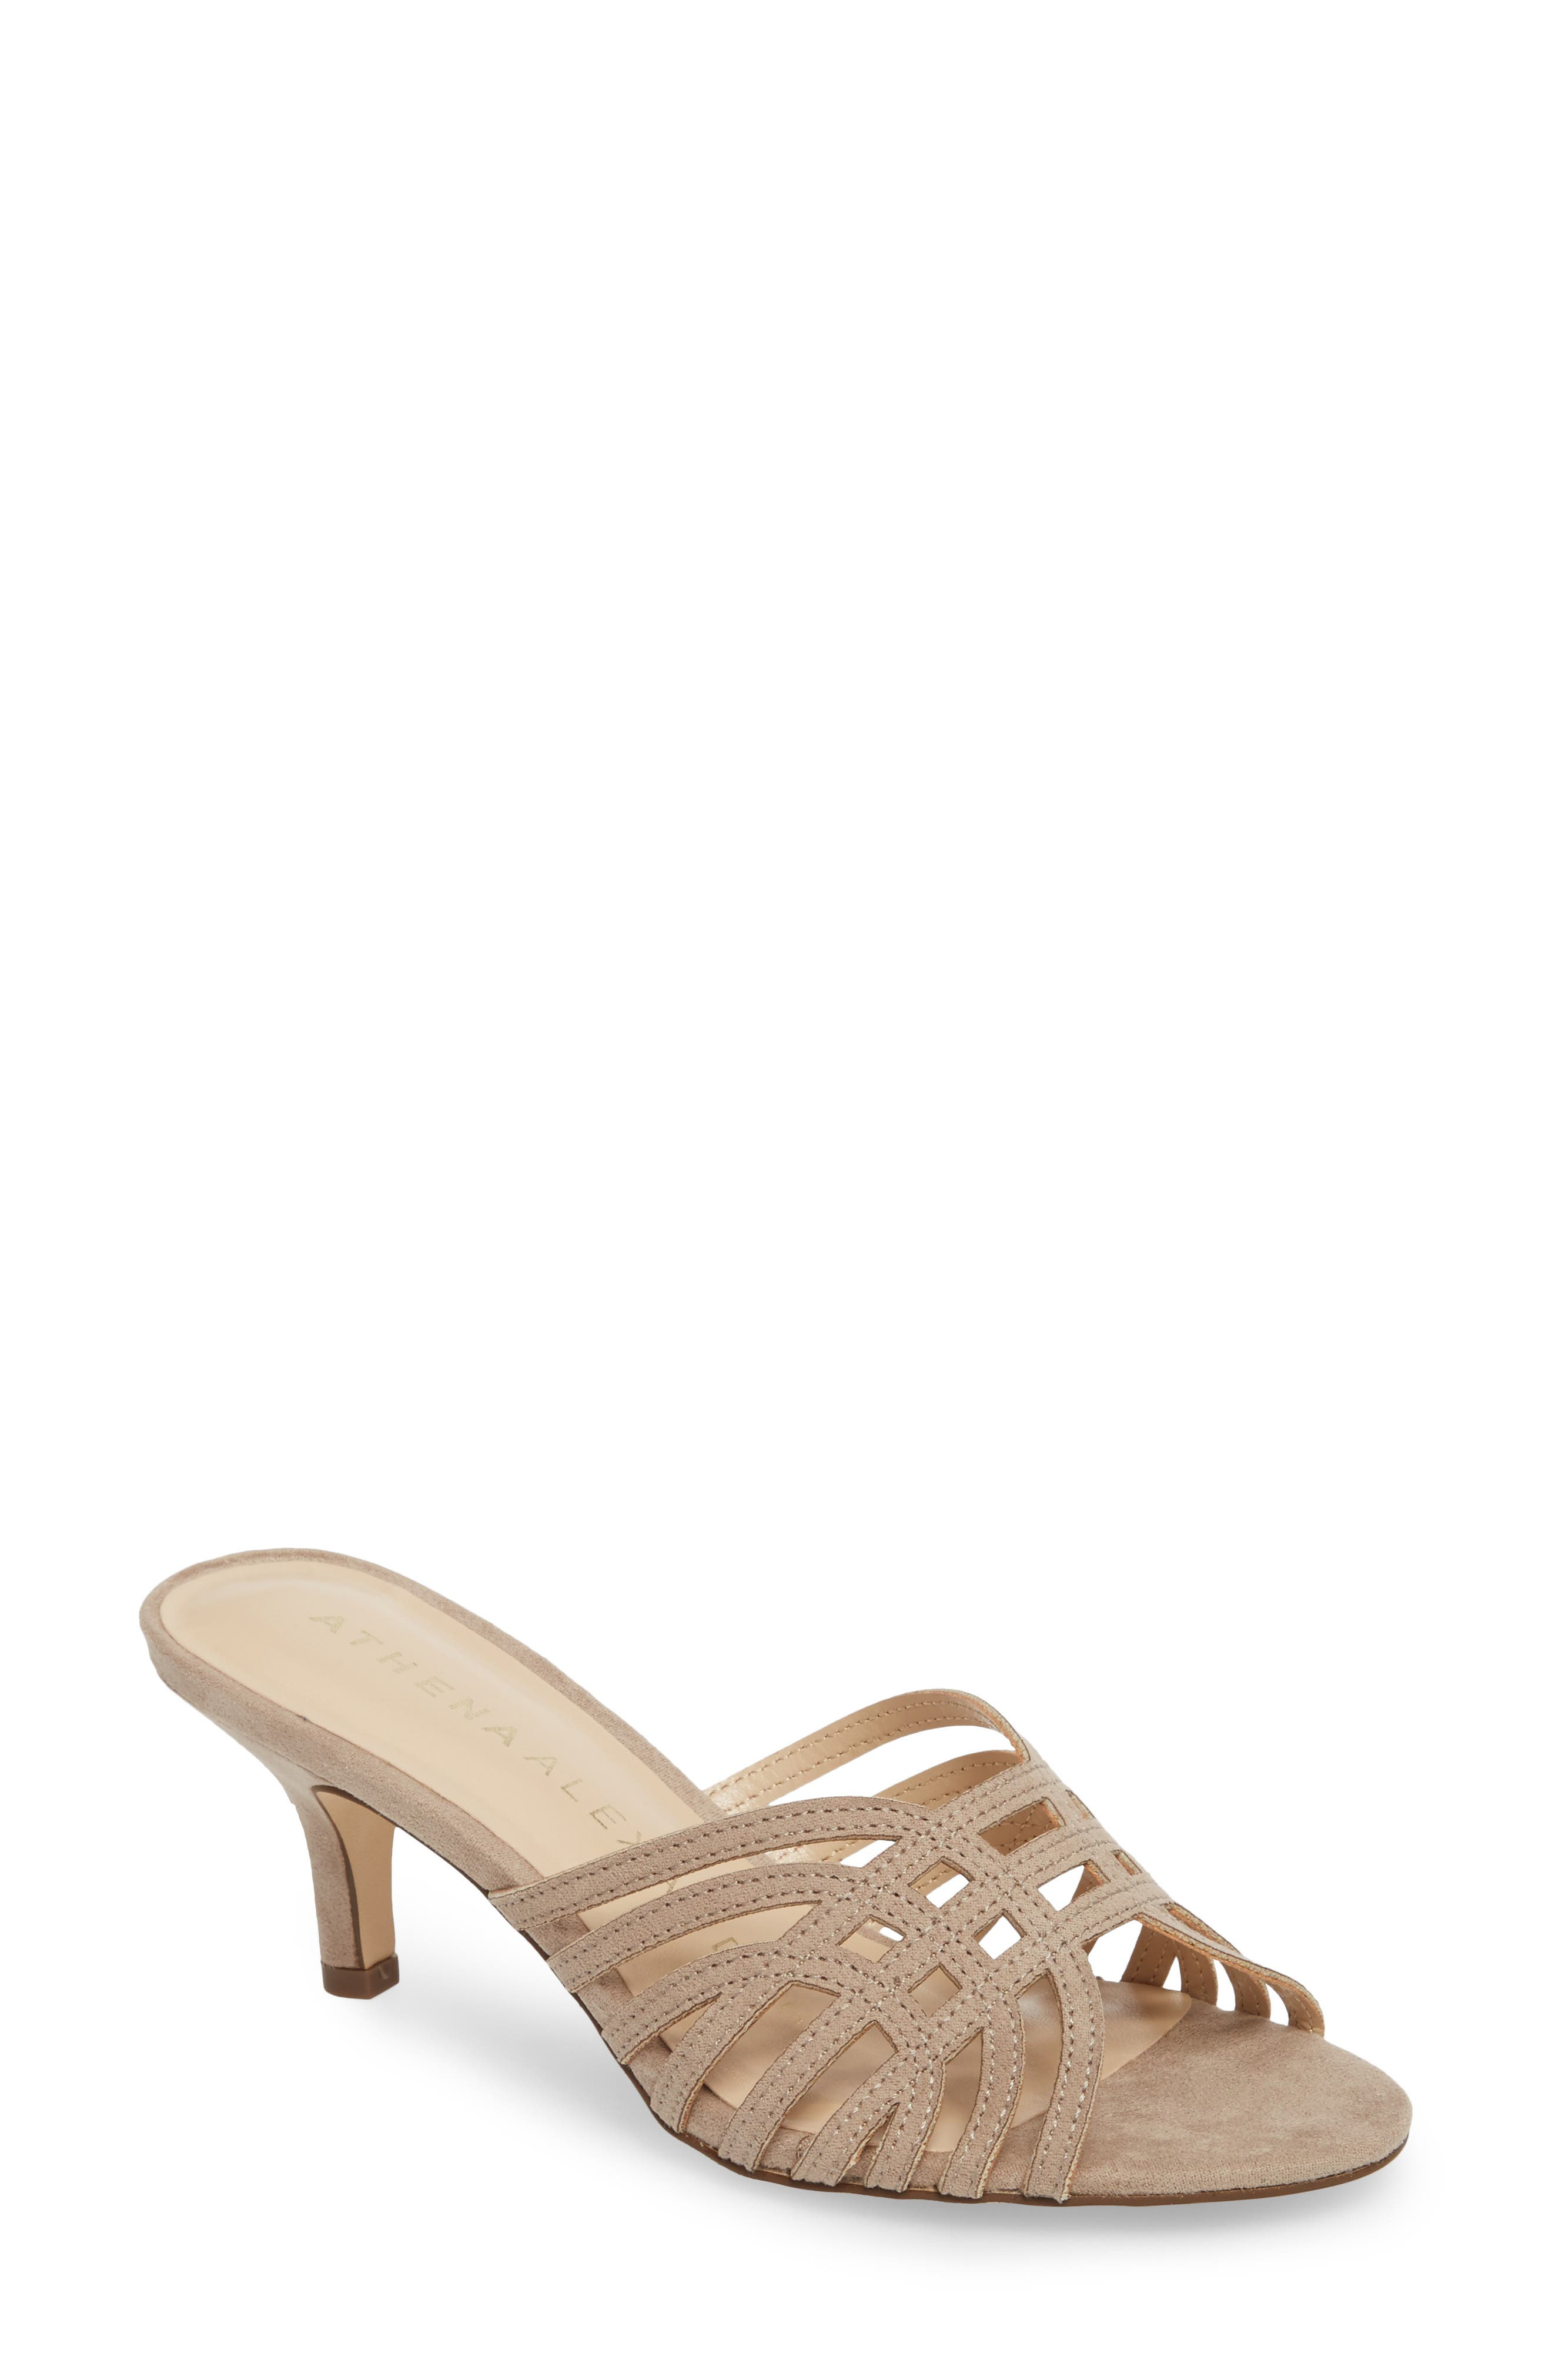 Alternate Image 1 Selected - Athena Alexander Cece Cutout Sandal (Women)